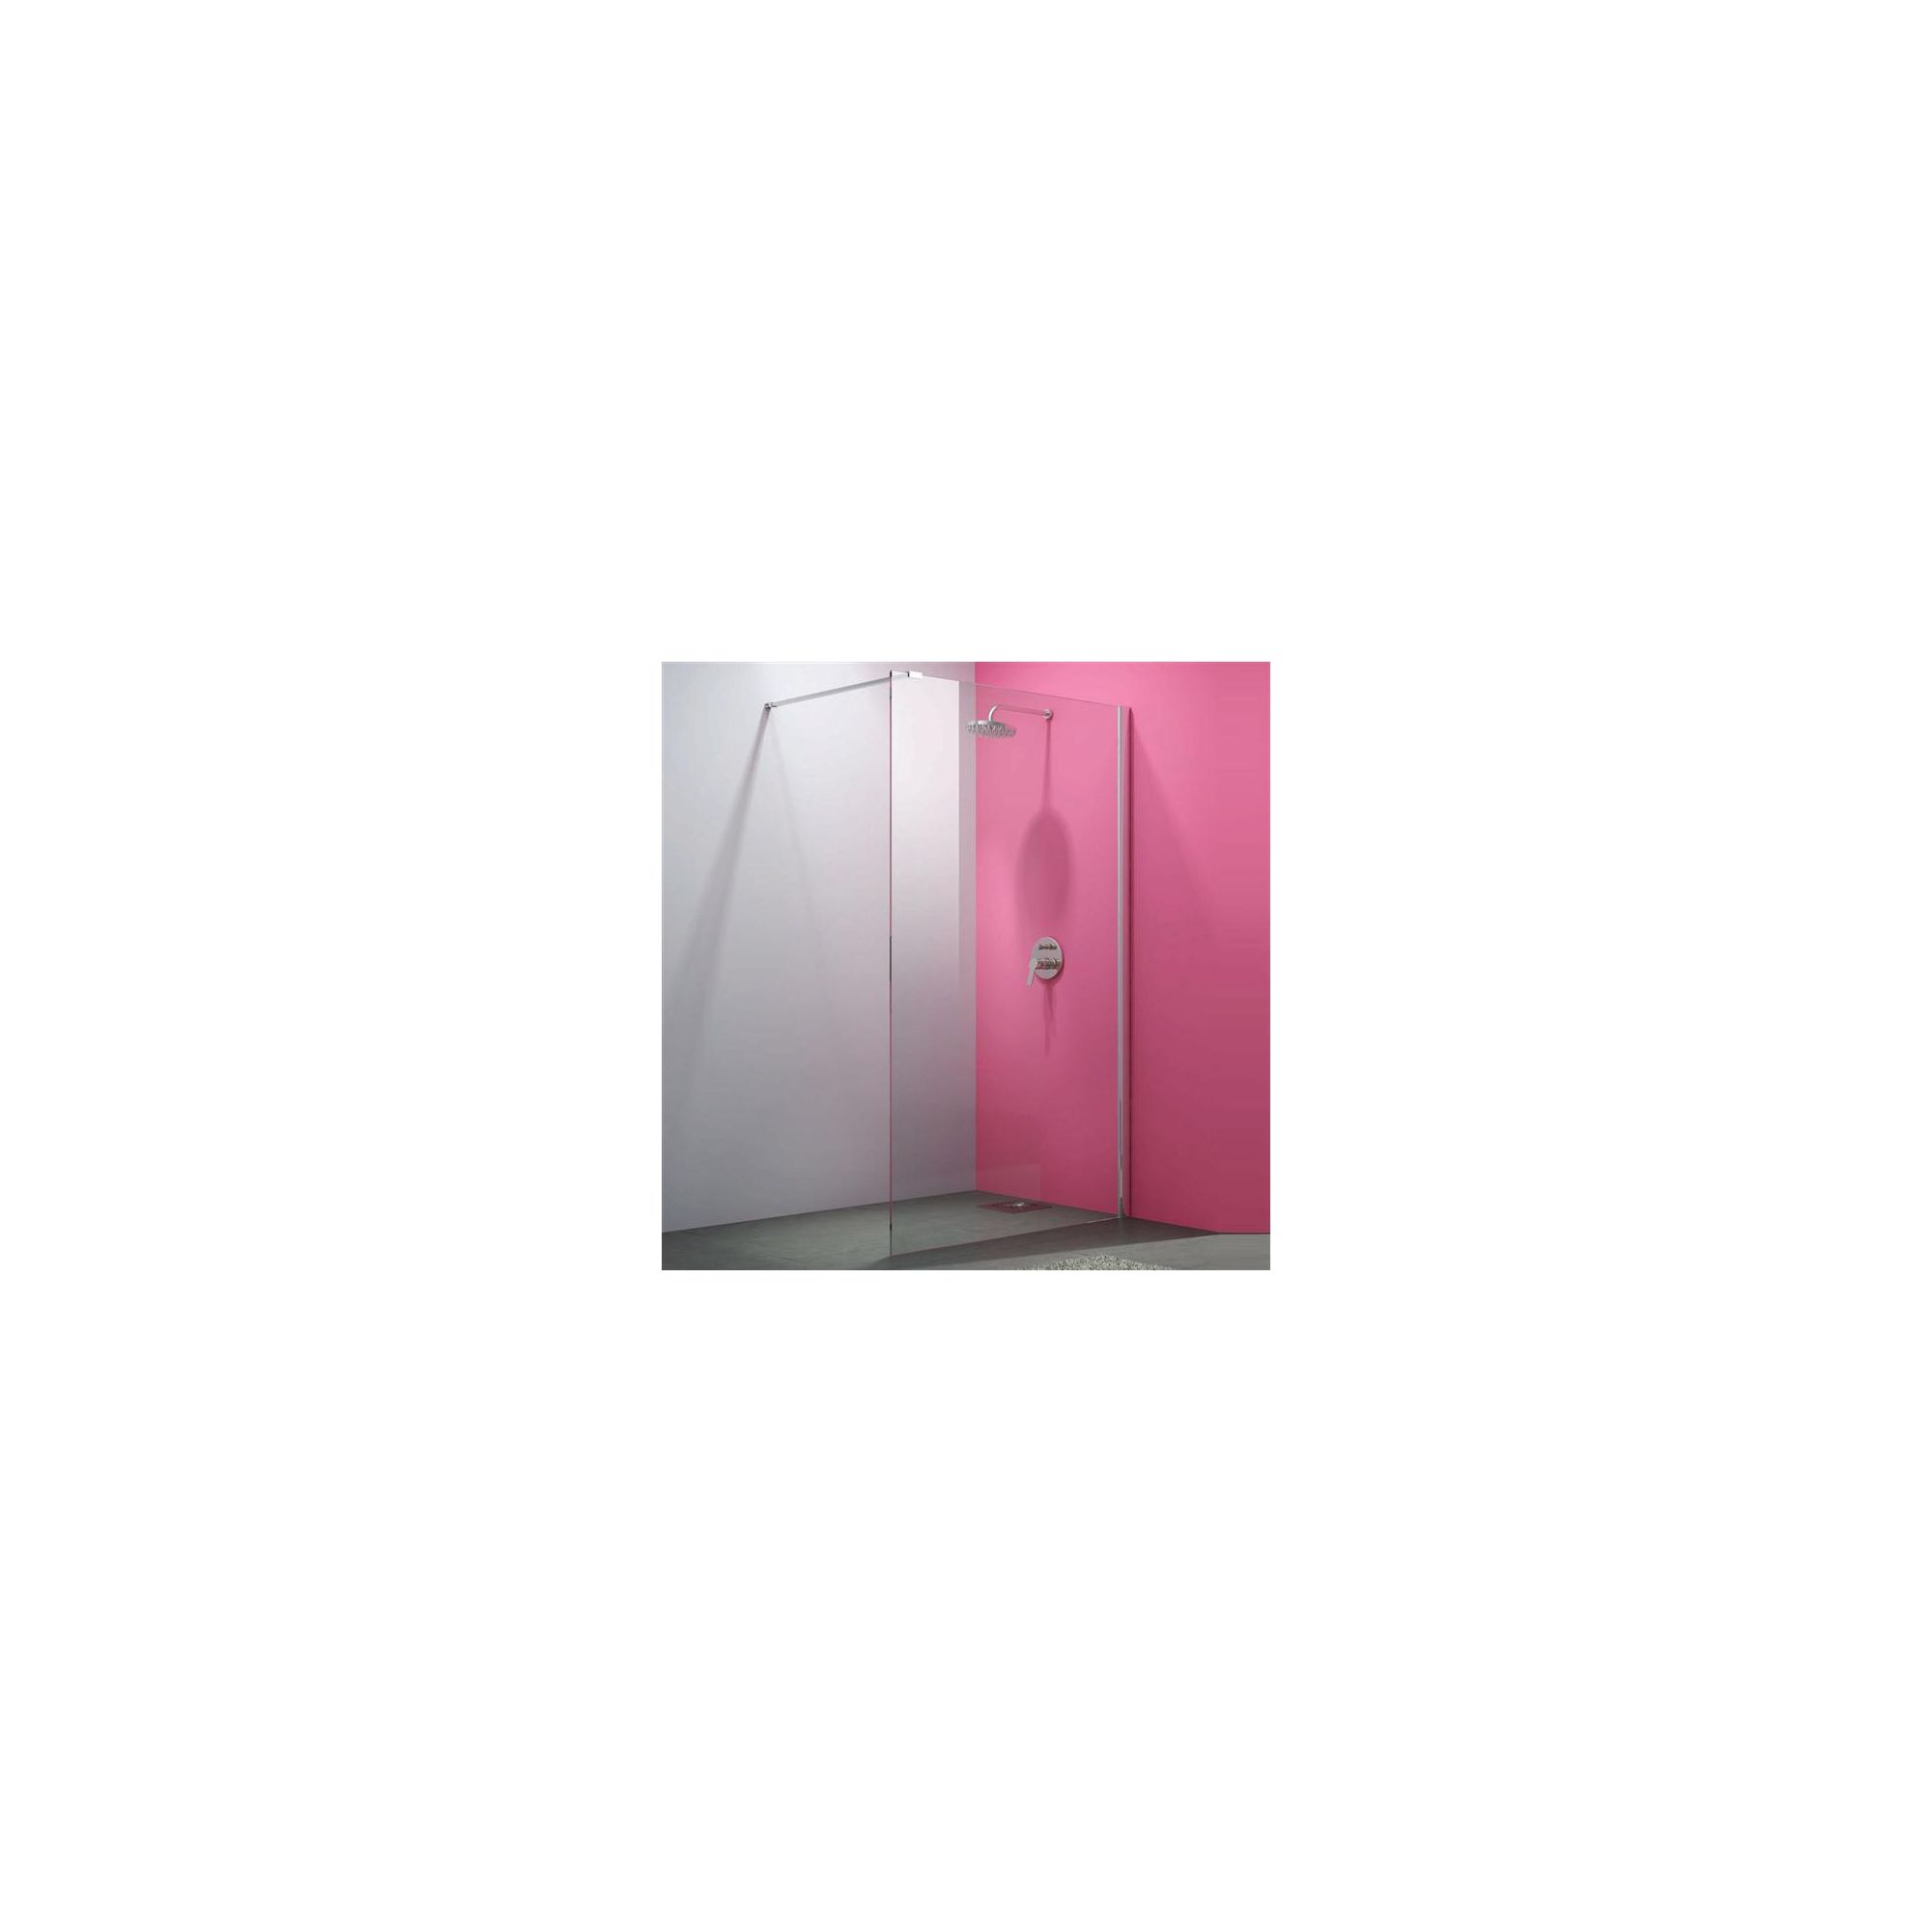 Merlyn Vivid Eight Wet Room Shower Glass Panel 900mm Wide at Tesco Direct